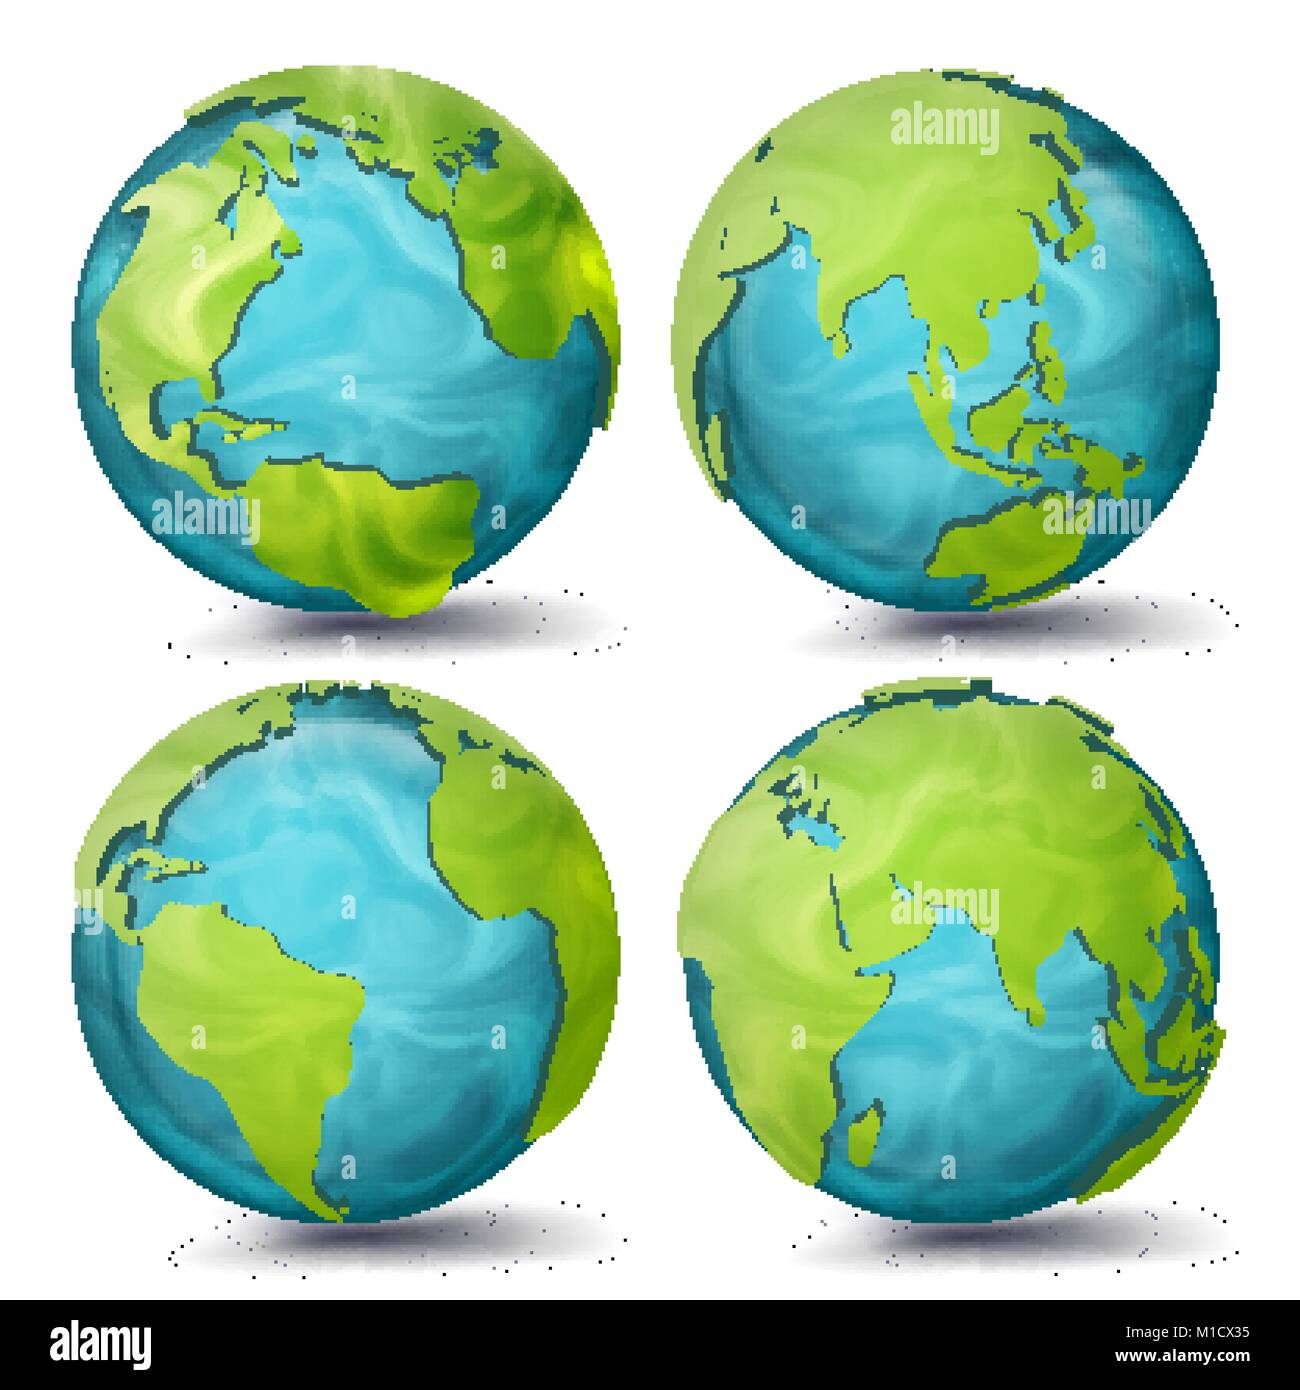 World Map Vector. 3d Planet Set. Earth With Continents. Eurasia, Australia, Oceania, North America, South America, - Stock Image